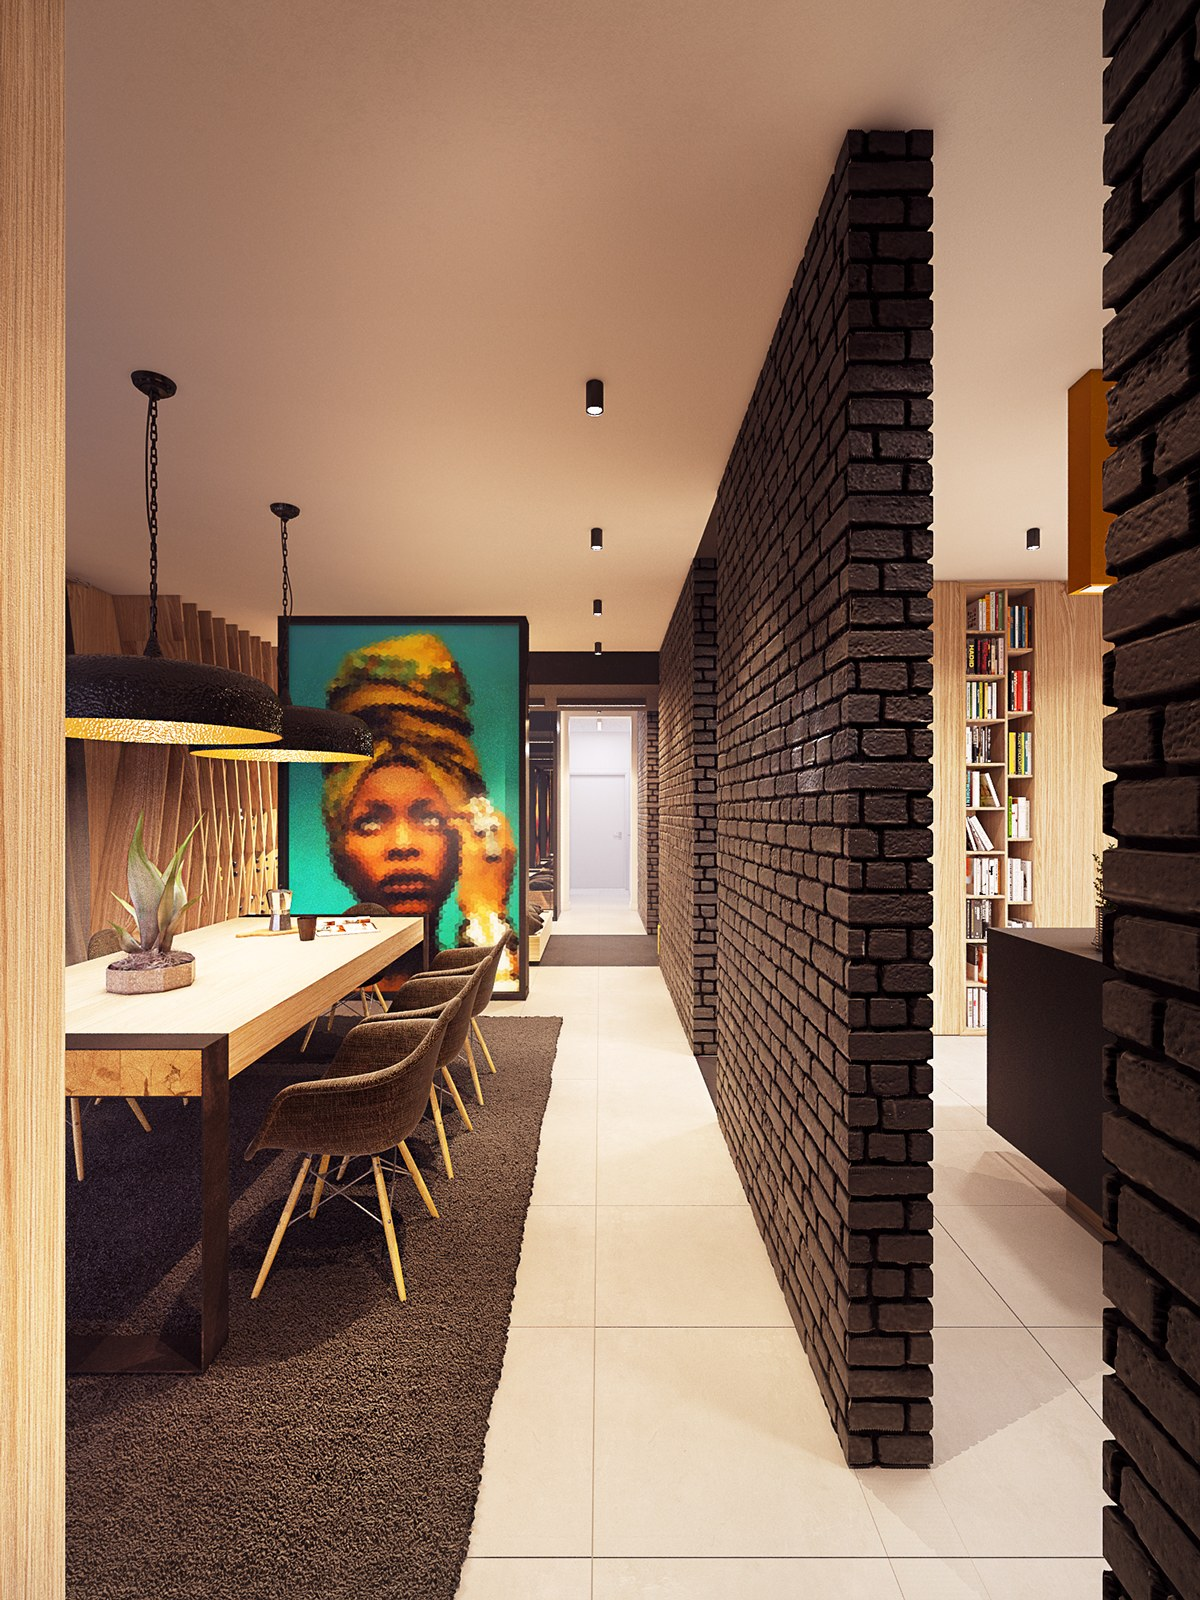 Brick Design - A seductive home with lush colors and double baths